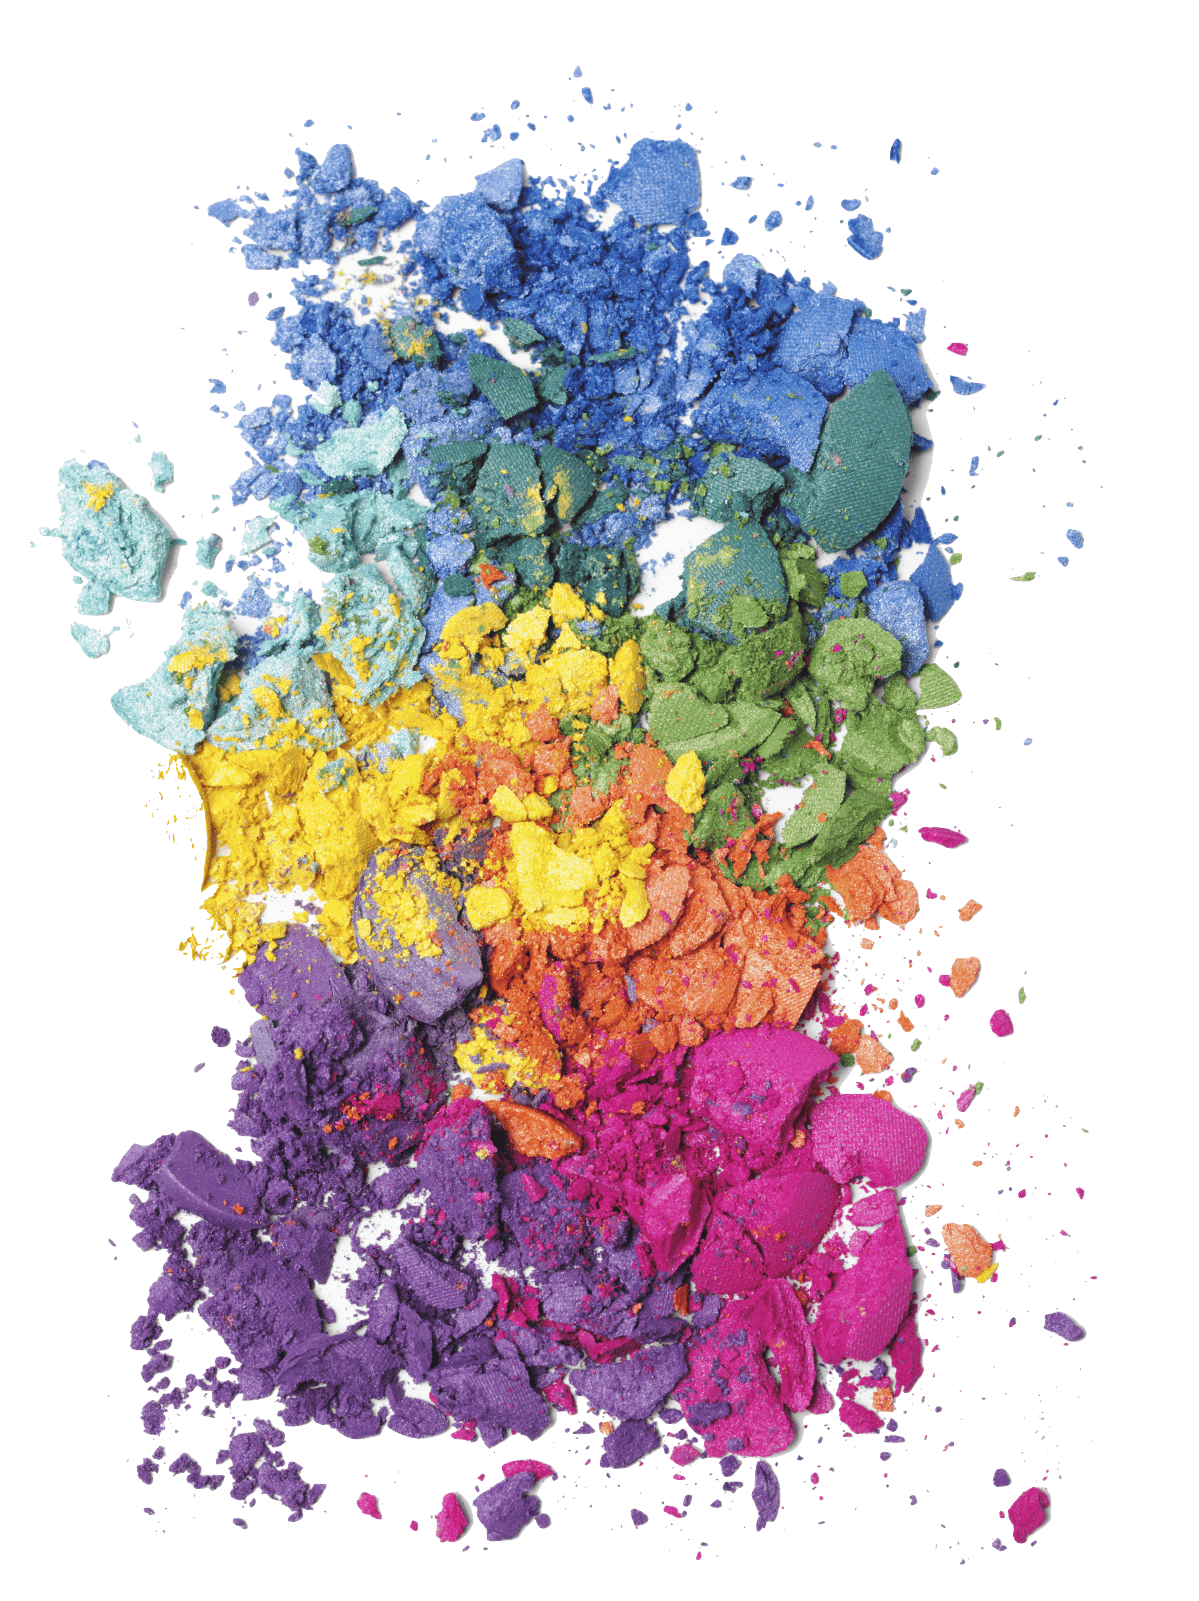 Picture Of Makeup Colors For Makeup Artistry Course